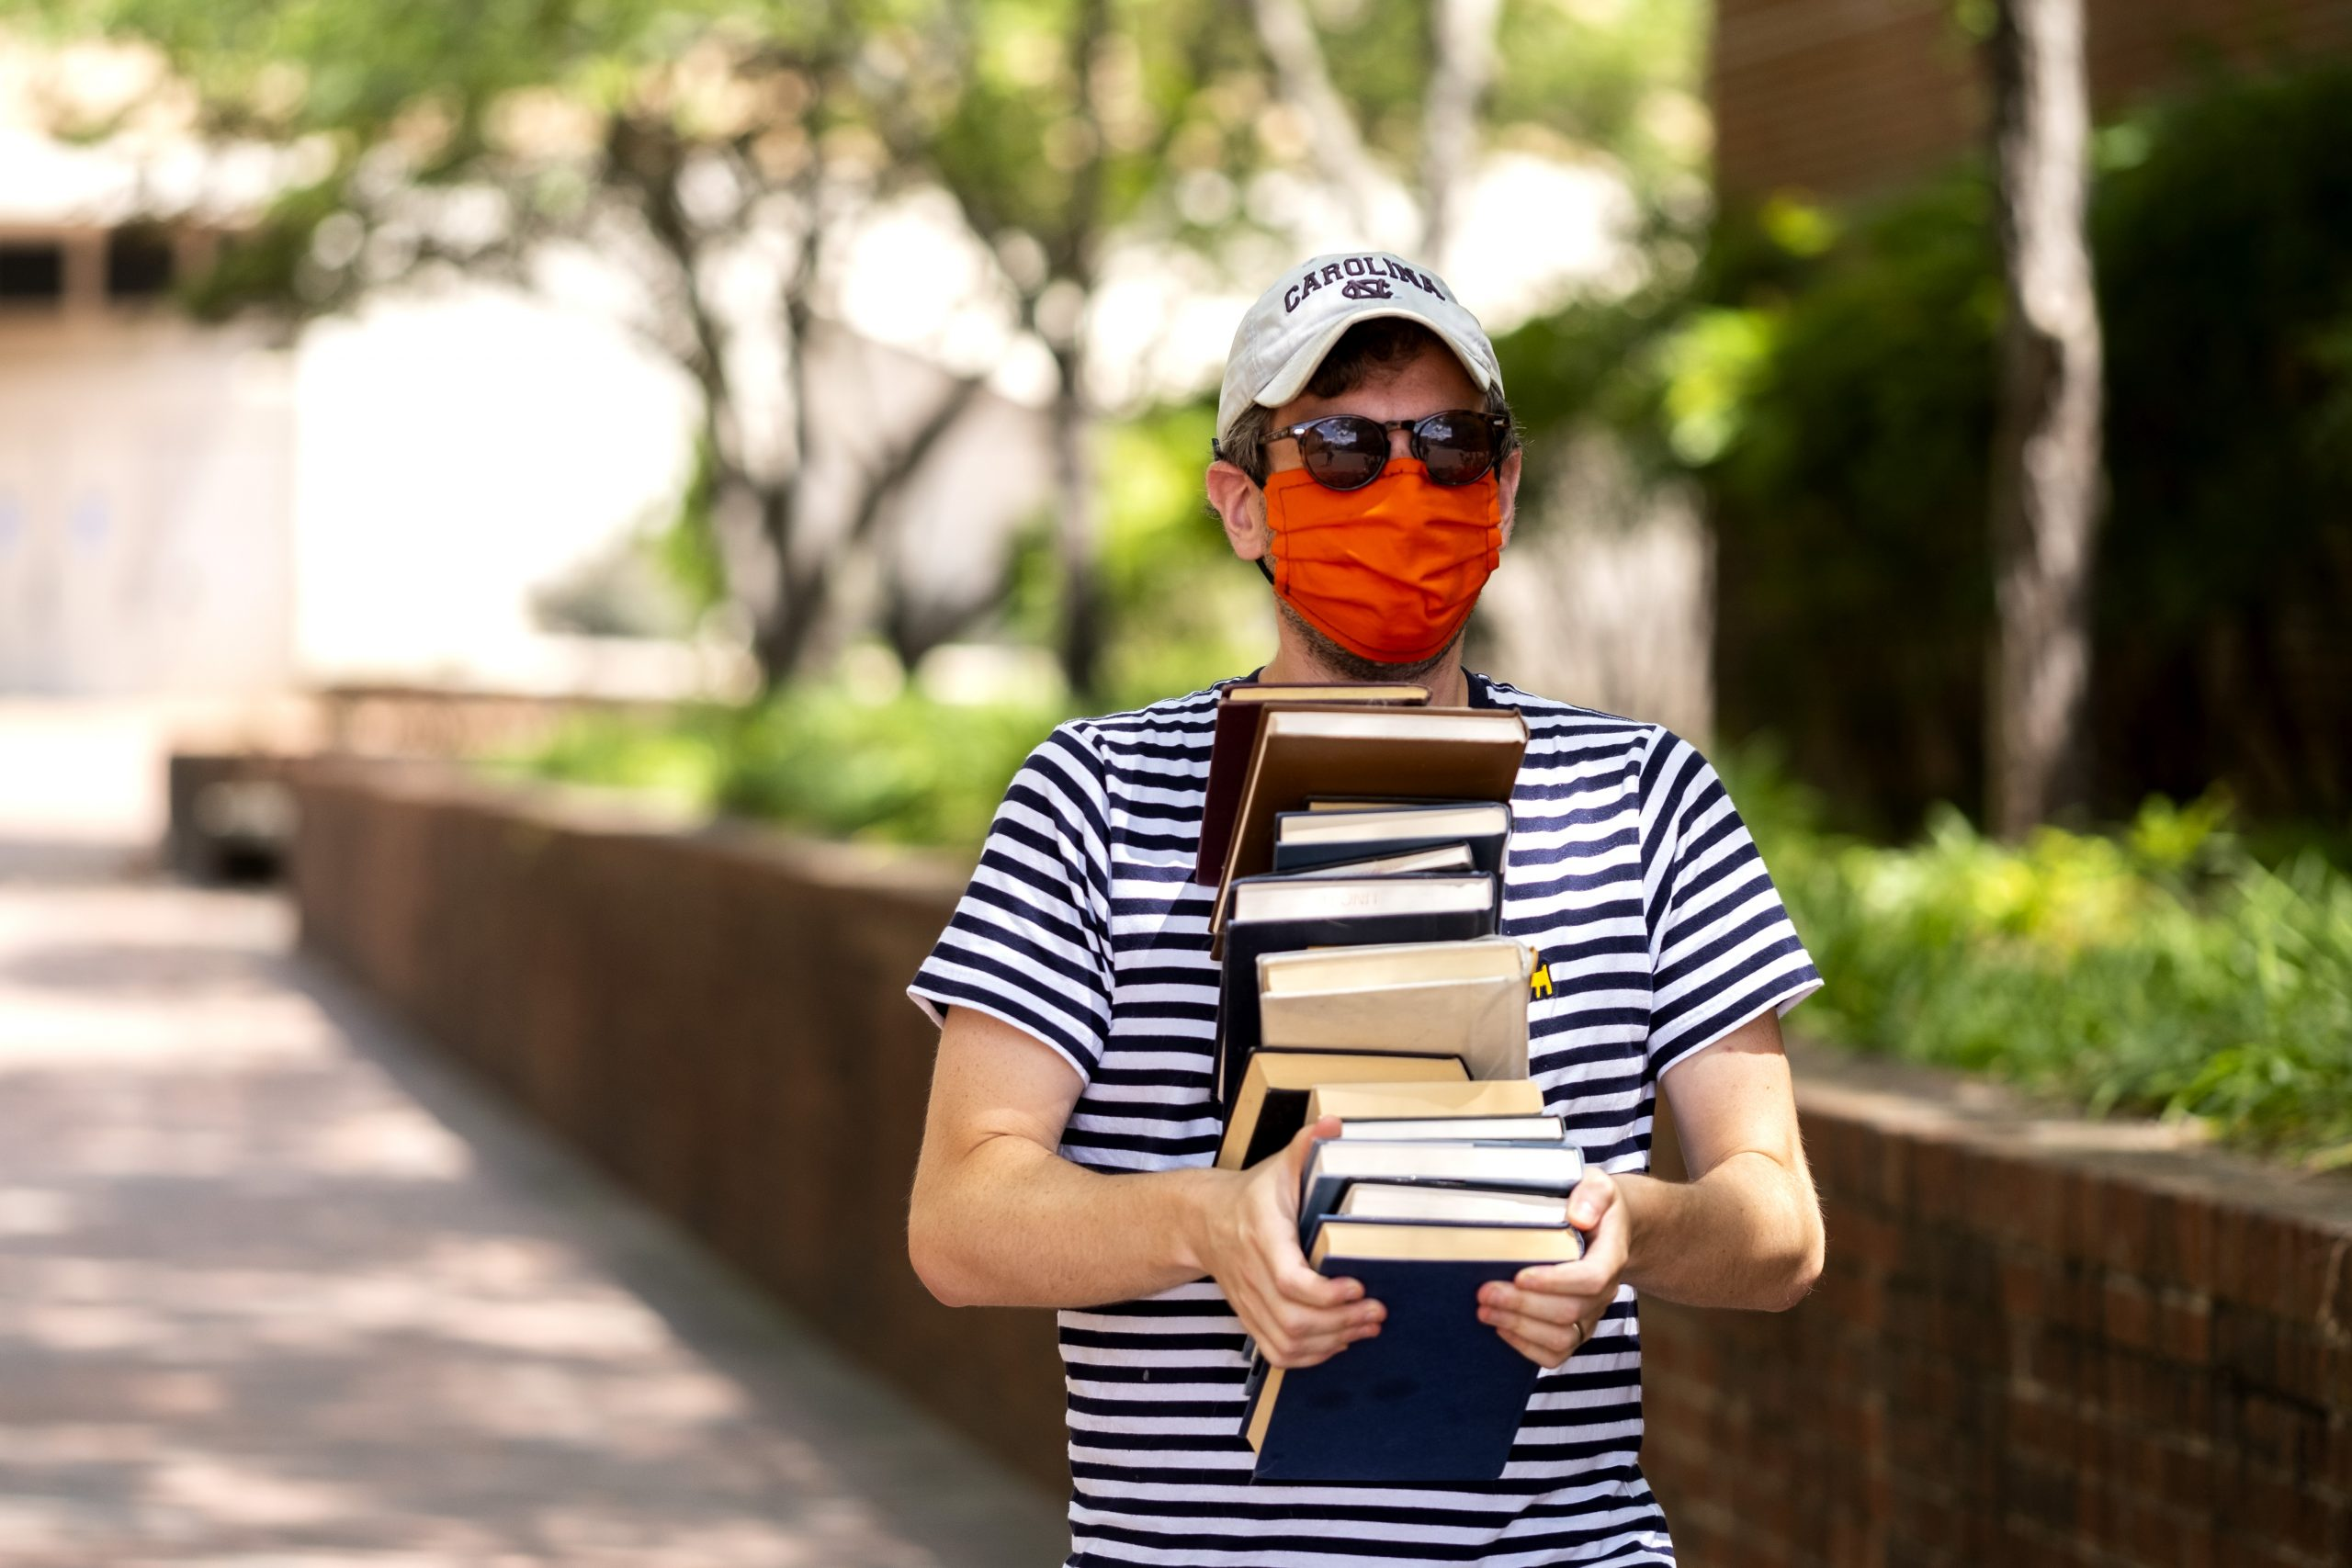 Man in mask carrying books